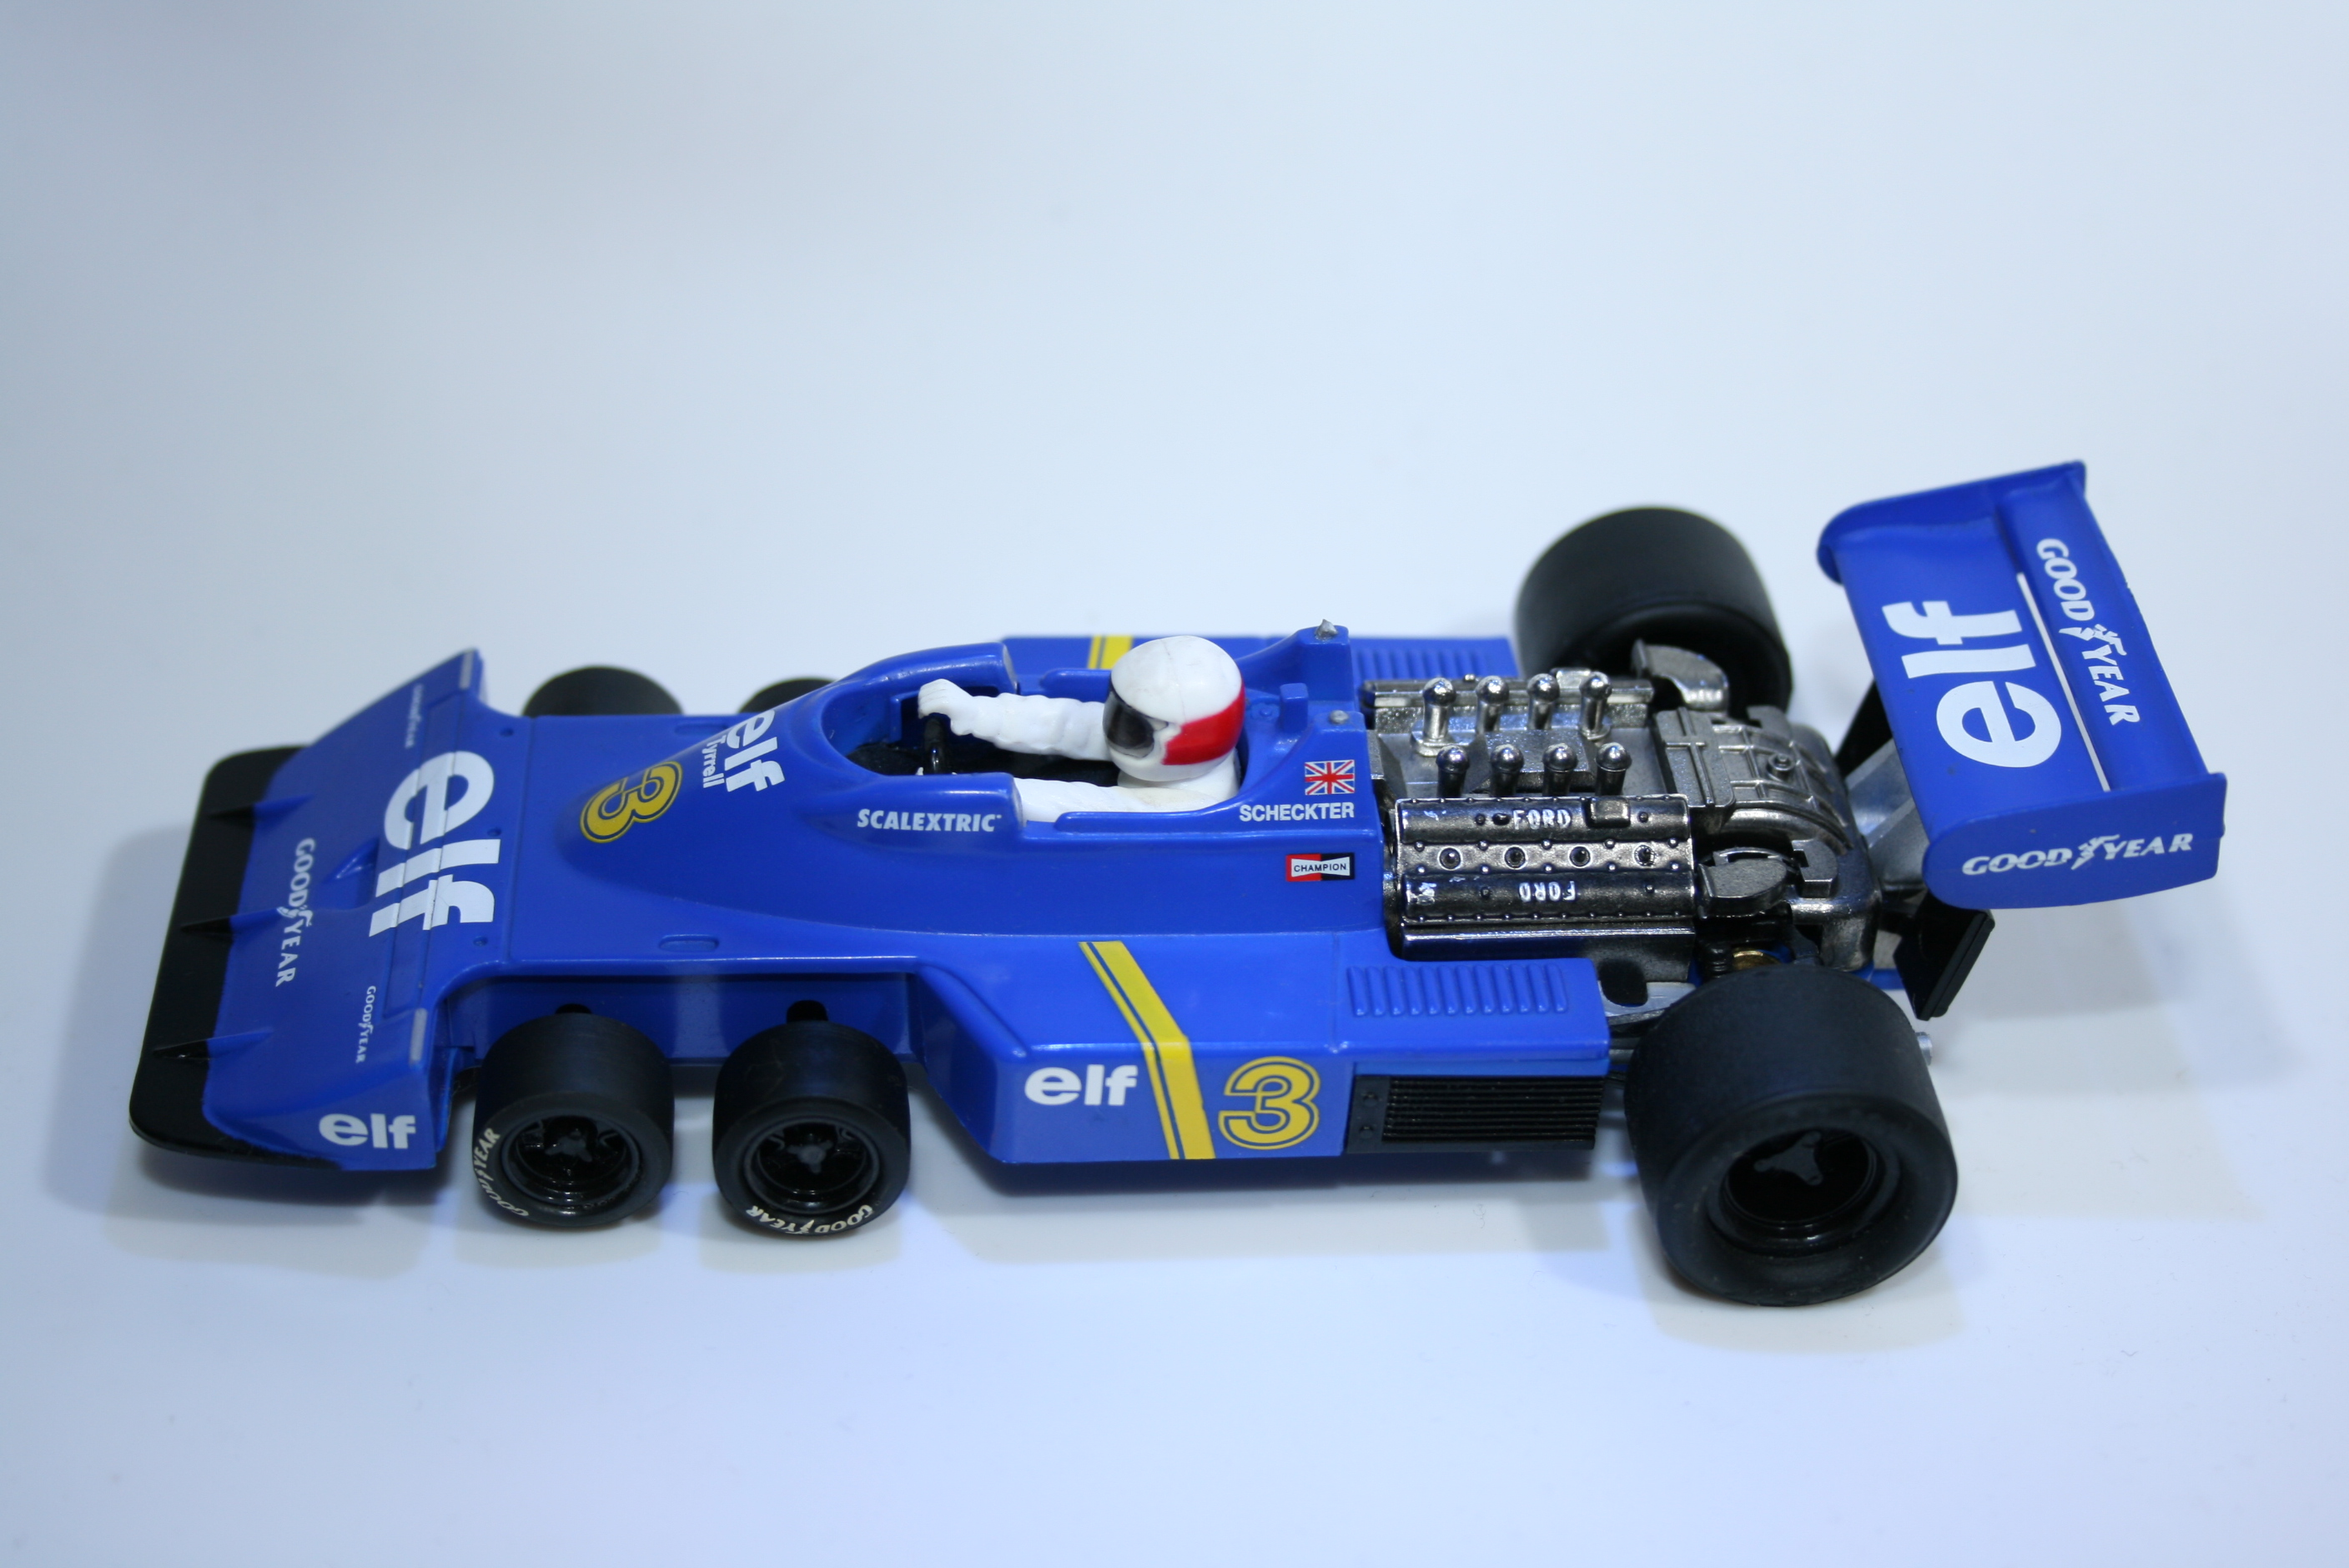 79 Tyrrell P34 1976 J Scheckter Technitoys Coches Miticos Altaya 2001